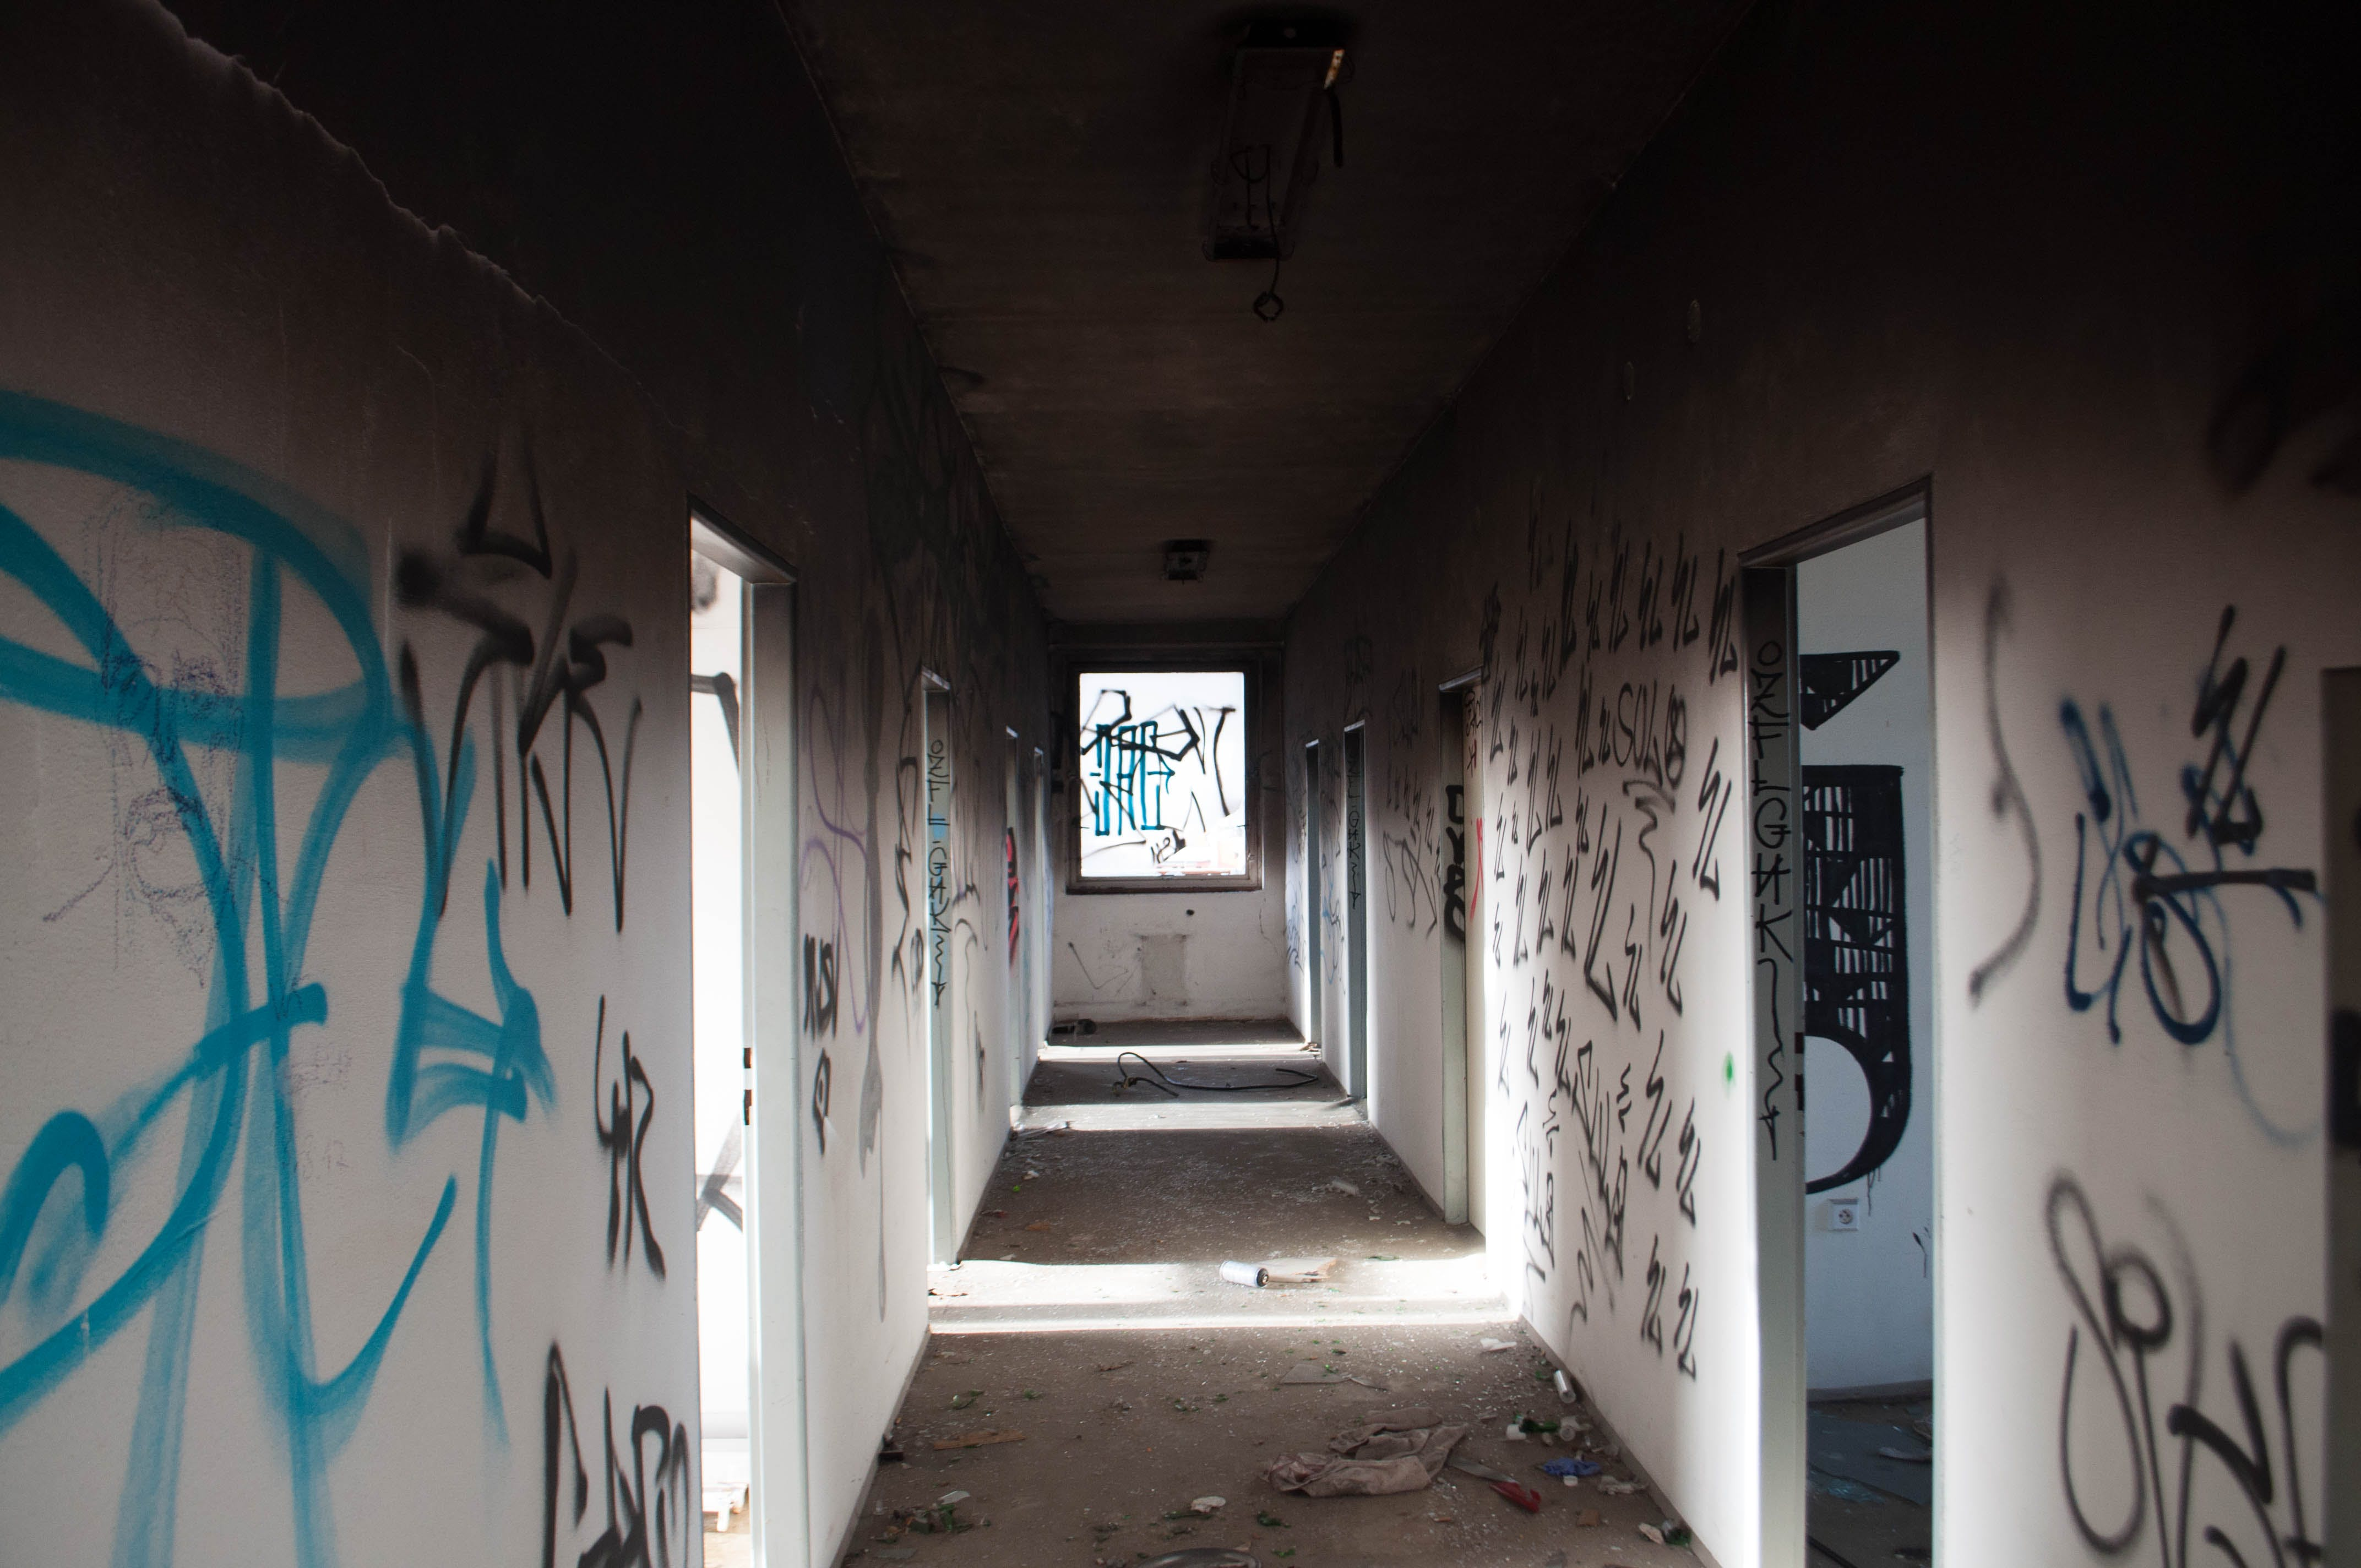 Empty Hallway With Black and Blue Graffiti